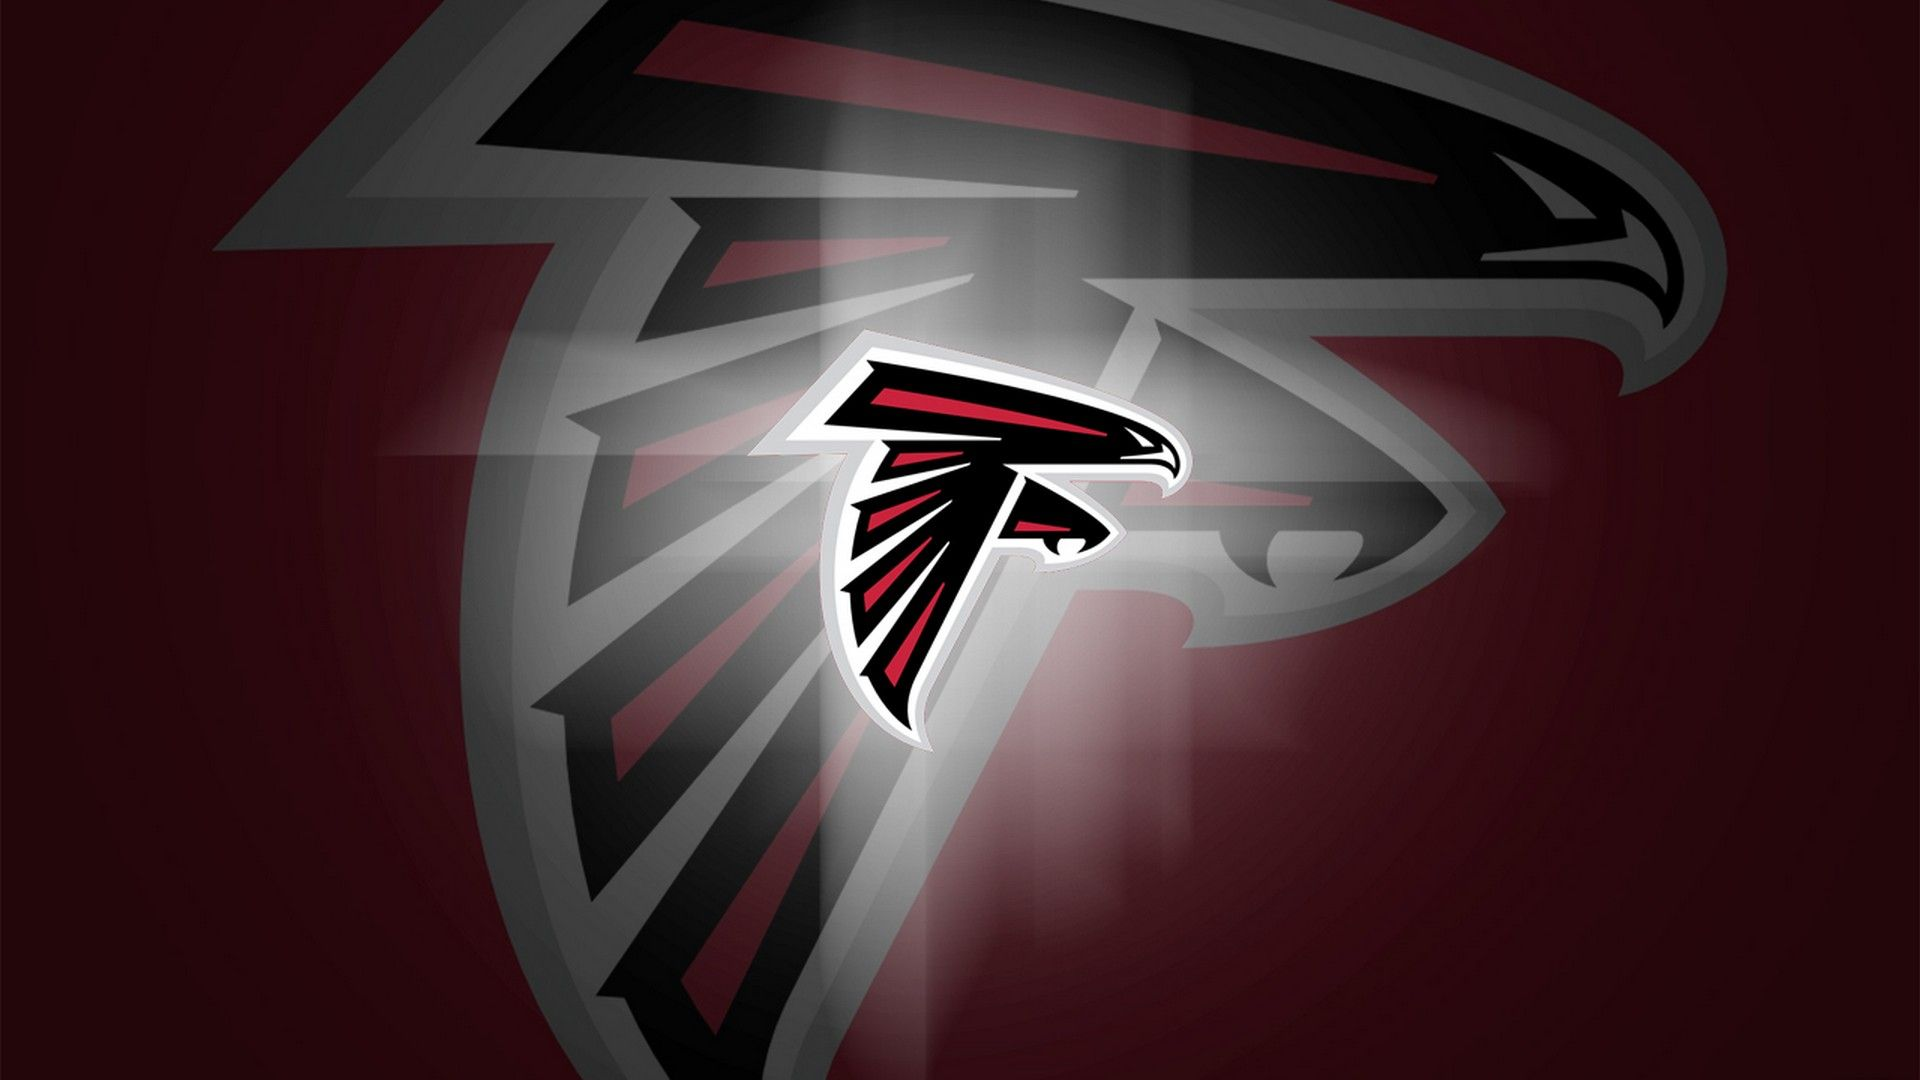 Falcons Desktop Wallpapers In 2020 Nfl Football Wallpaper Football Wallpaper Desktop Wallpaper